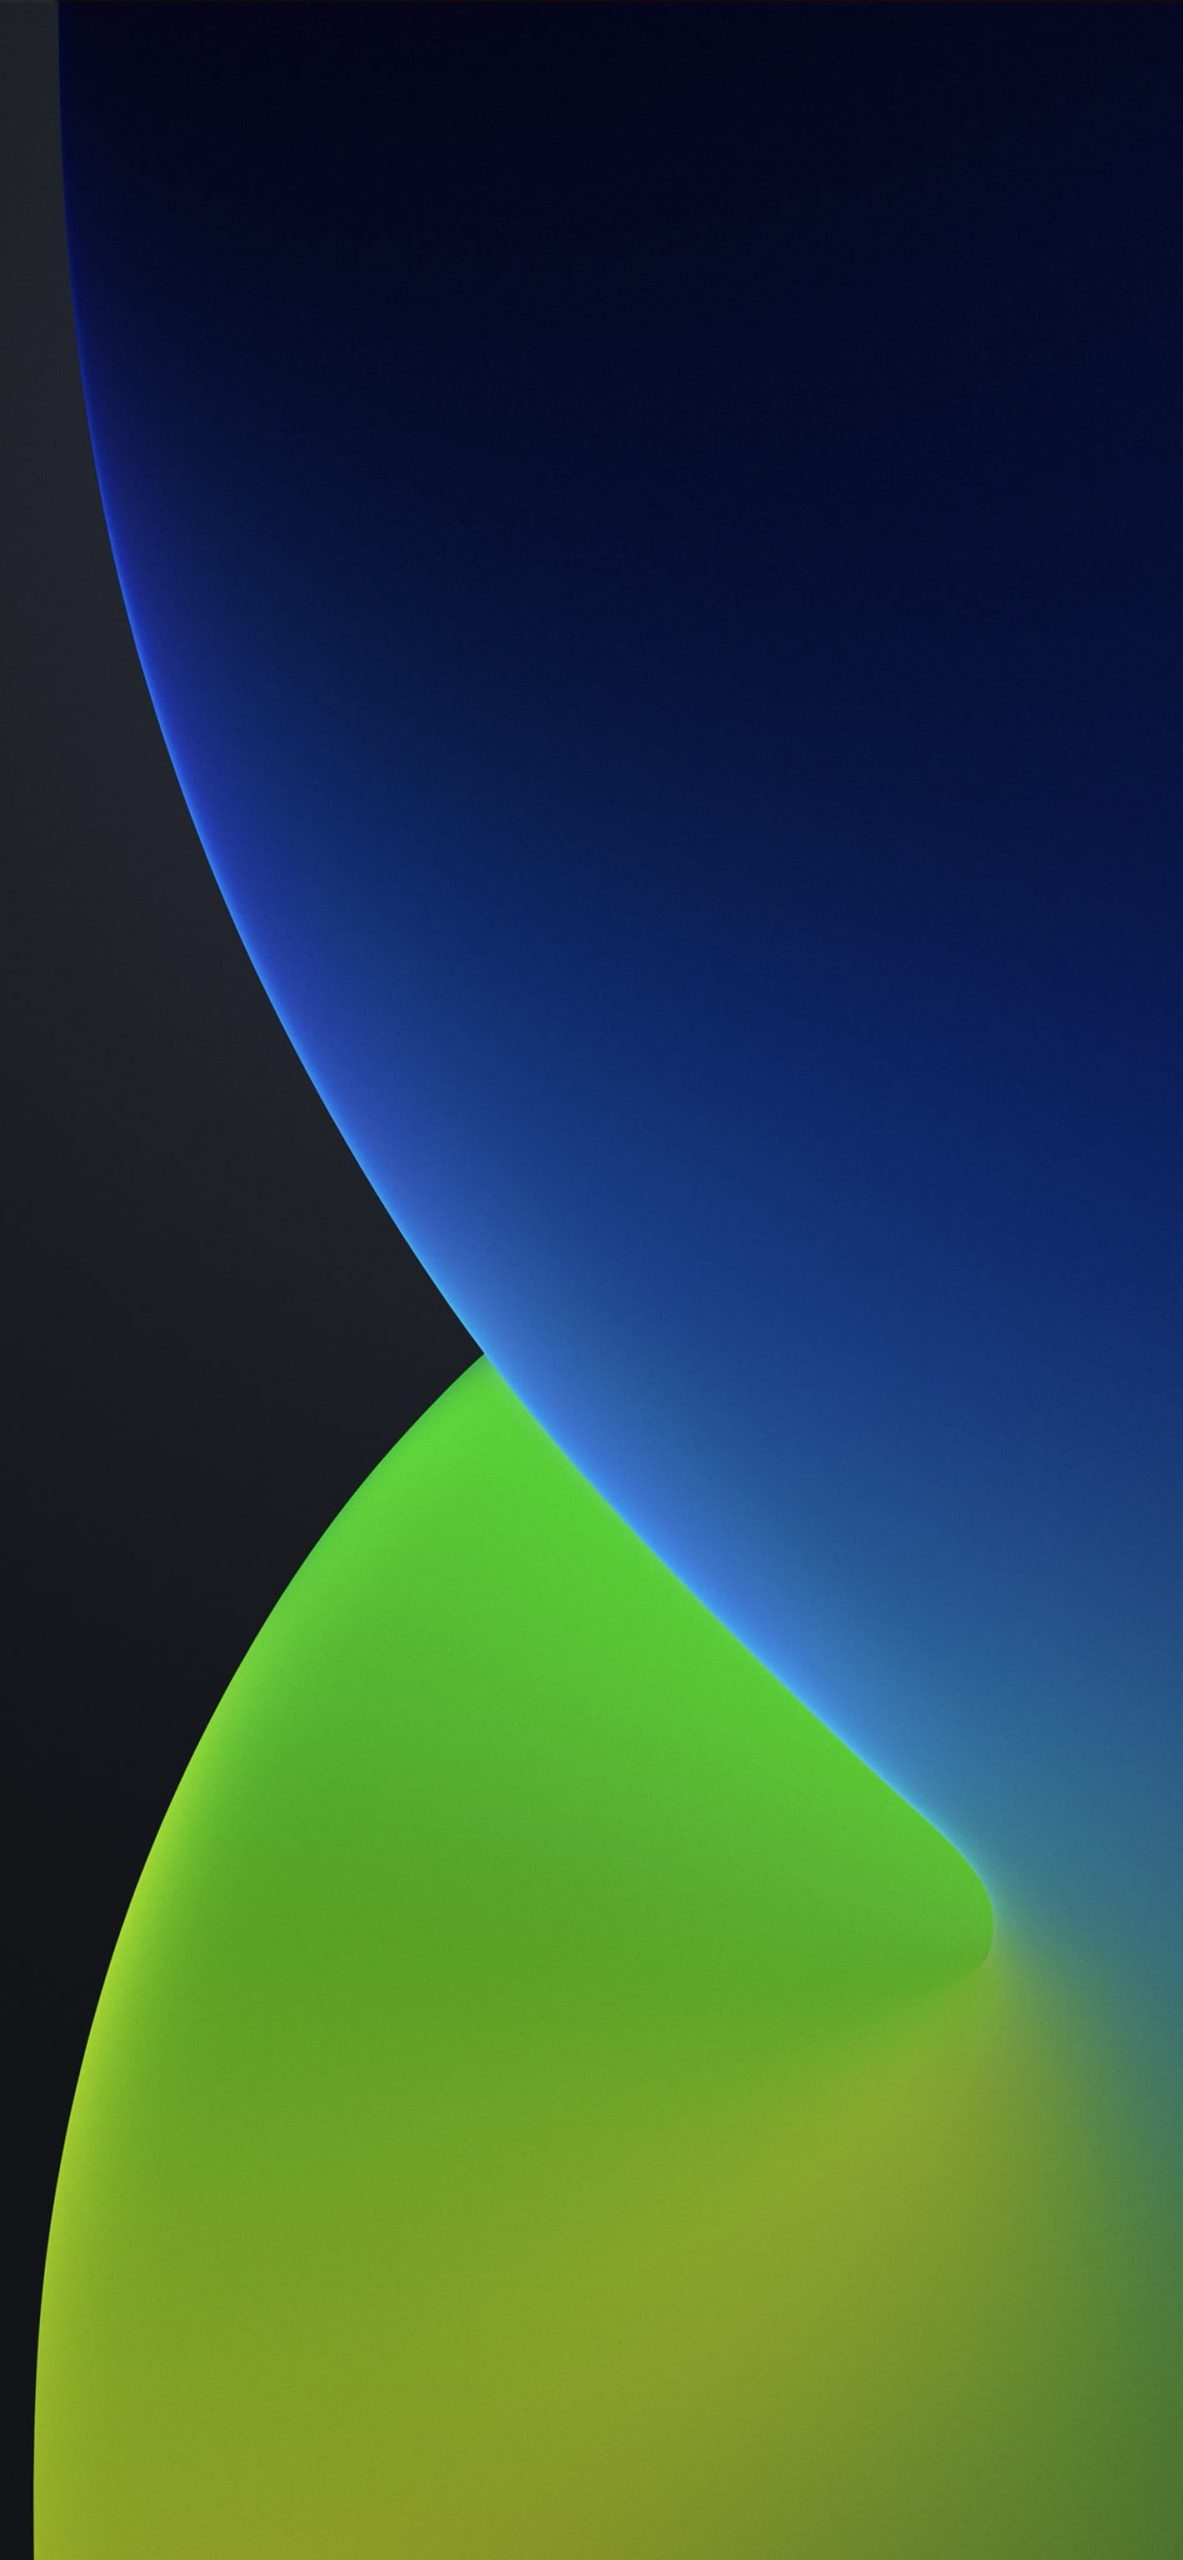 ios 14 wallpapers4 scaled iOS 14 Wallpapers